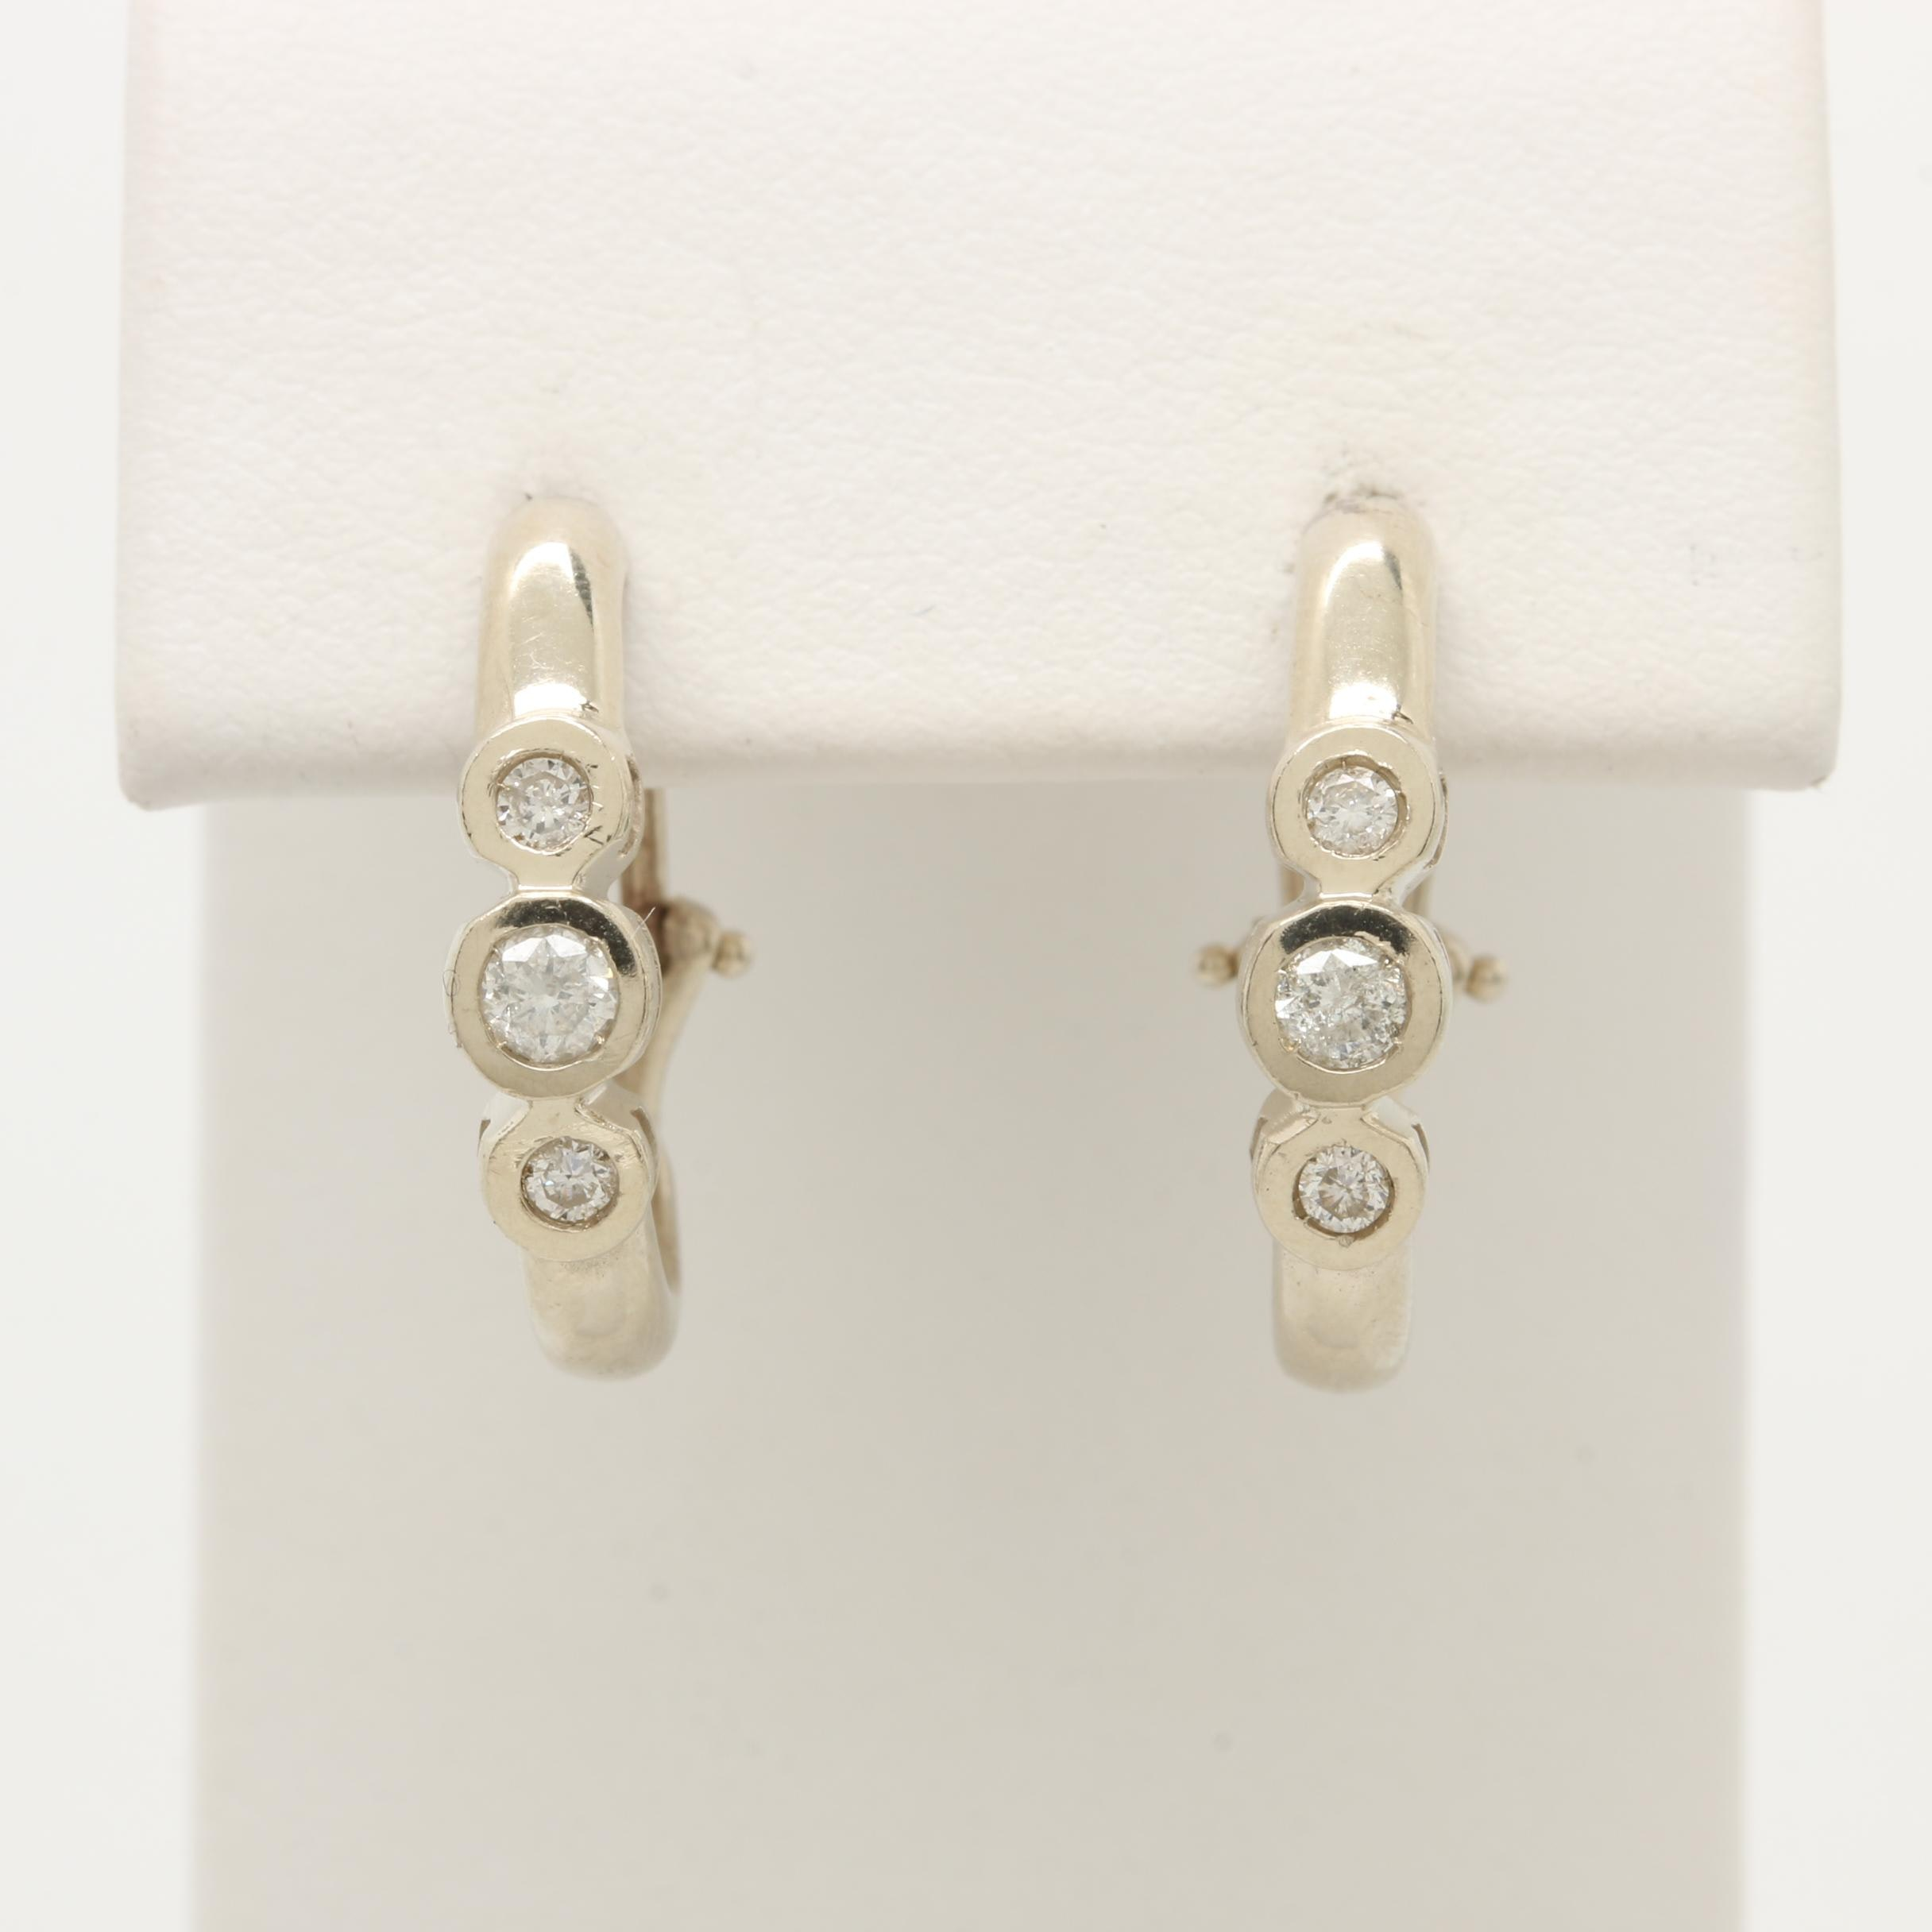 14K White Gold Diamond Half Hoop Earrings